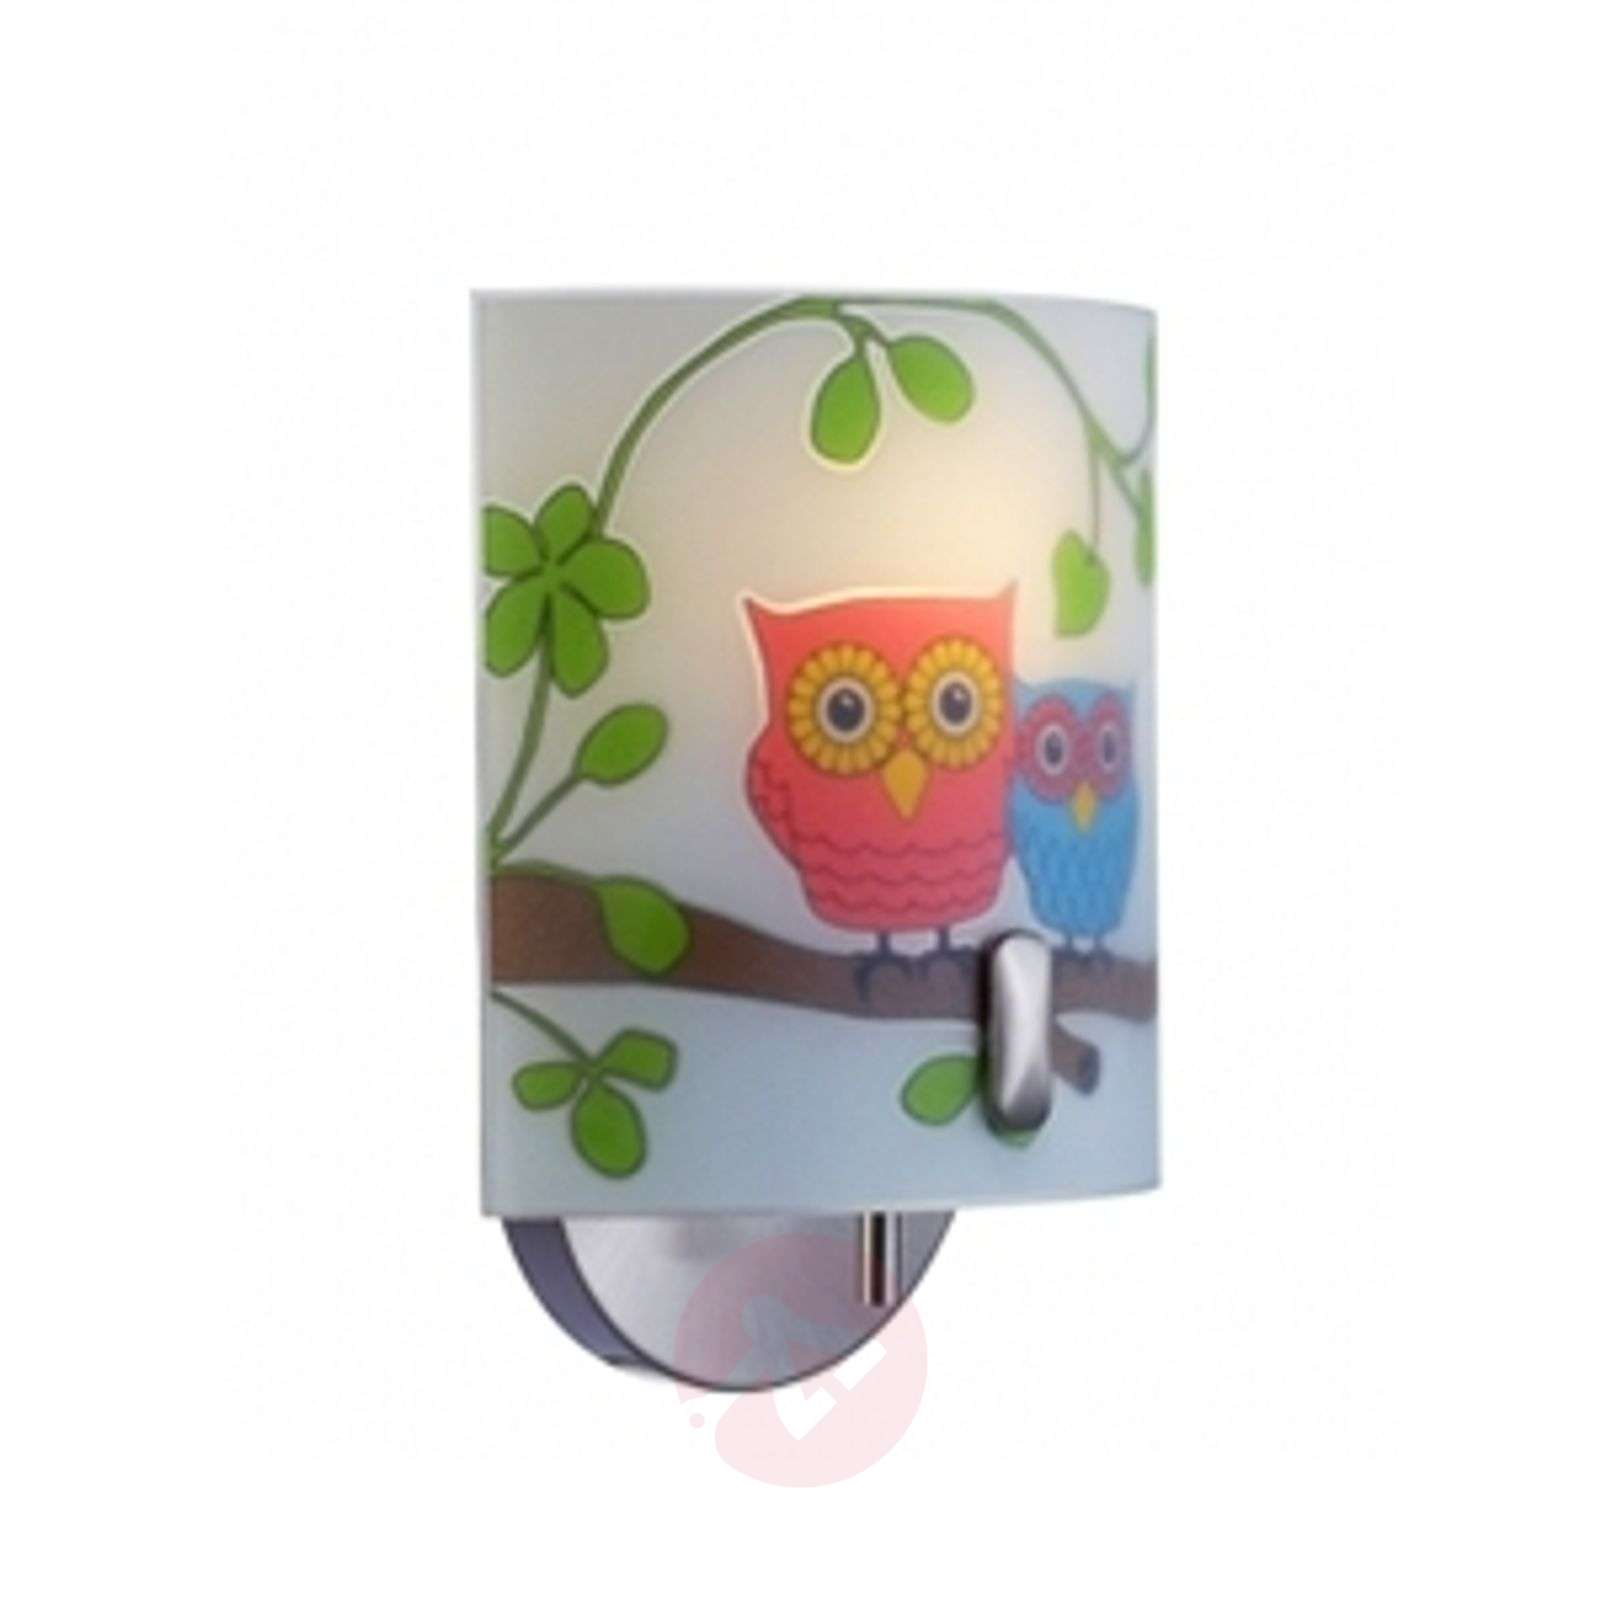 Child friendly wall light ugglarp owl motif lights child friendly wall light ugglarp owl motif 6505546 01 aloadofball Image collections